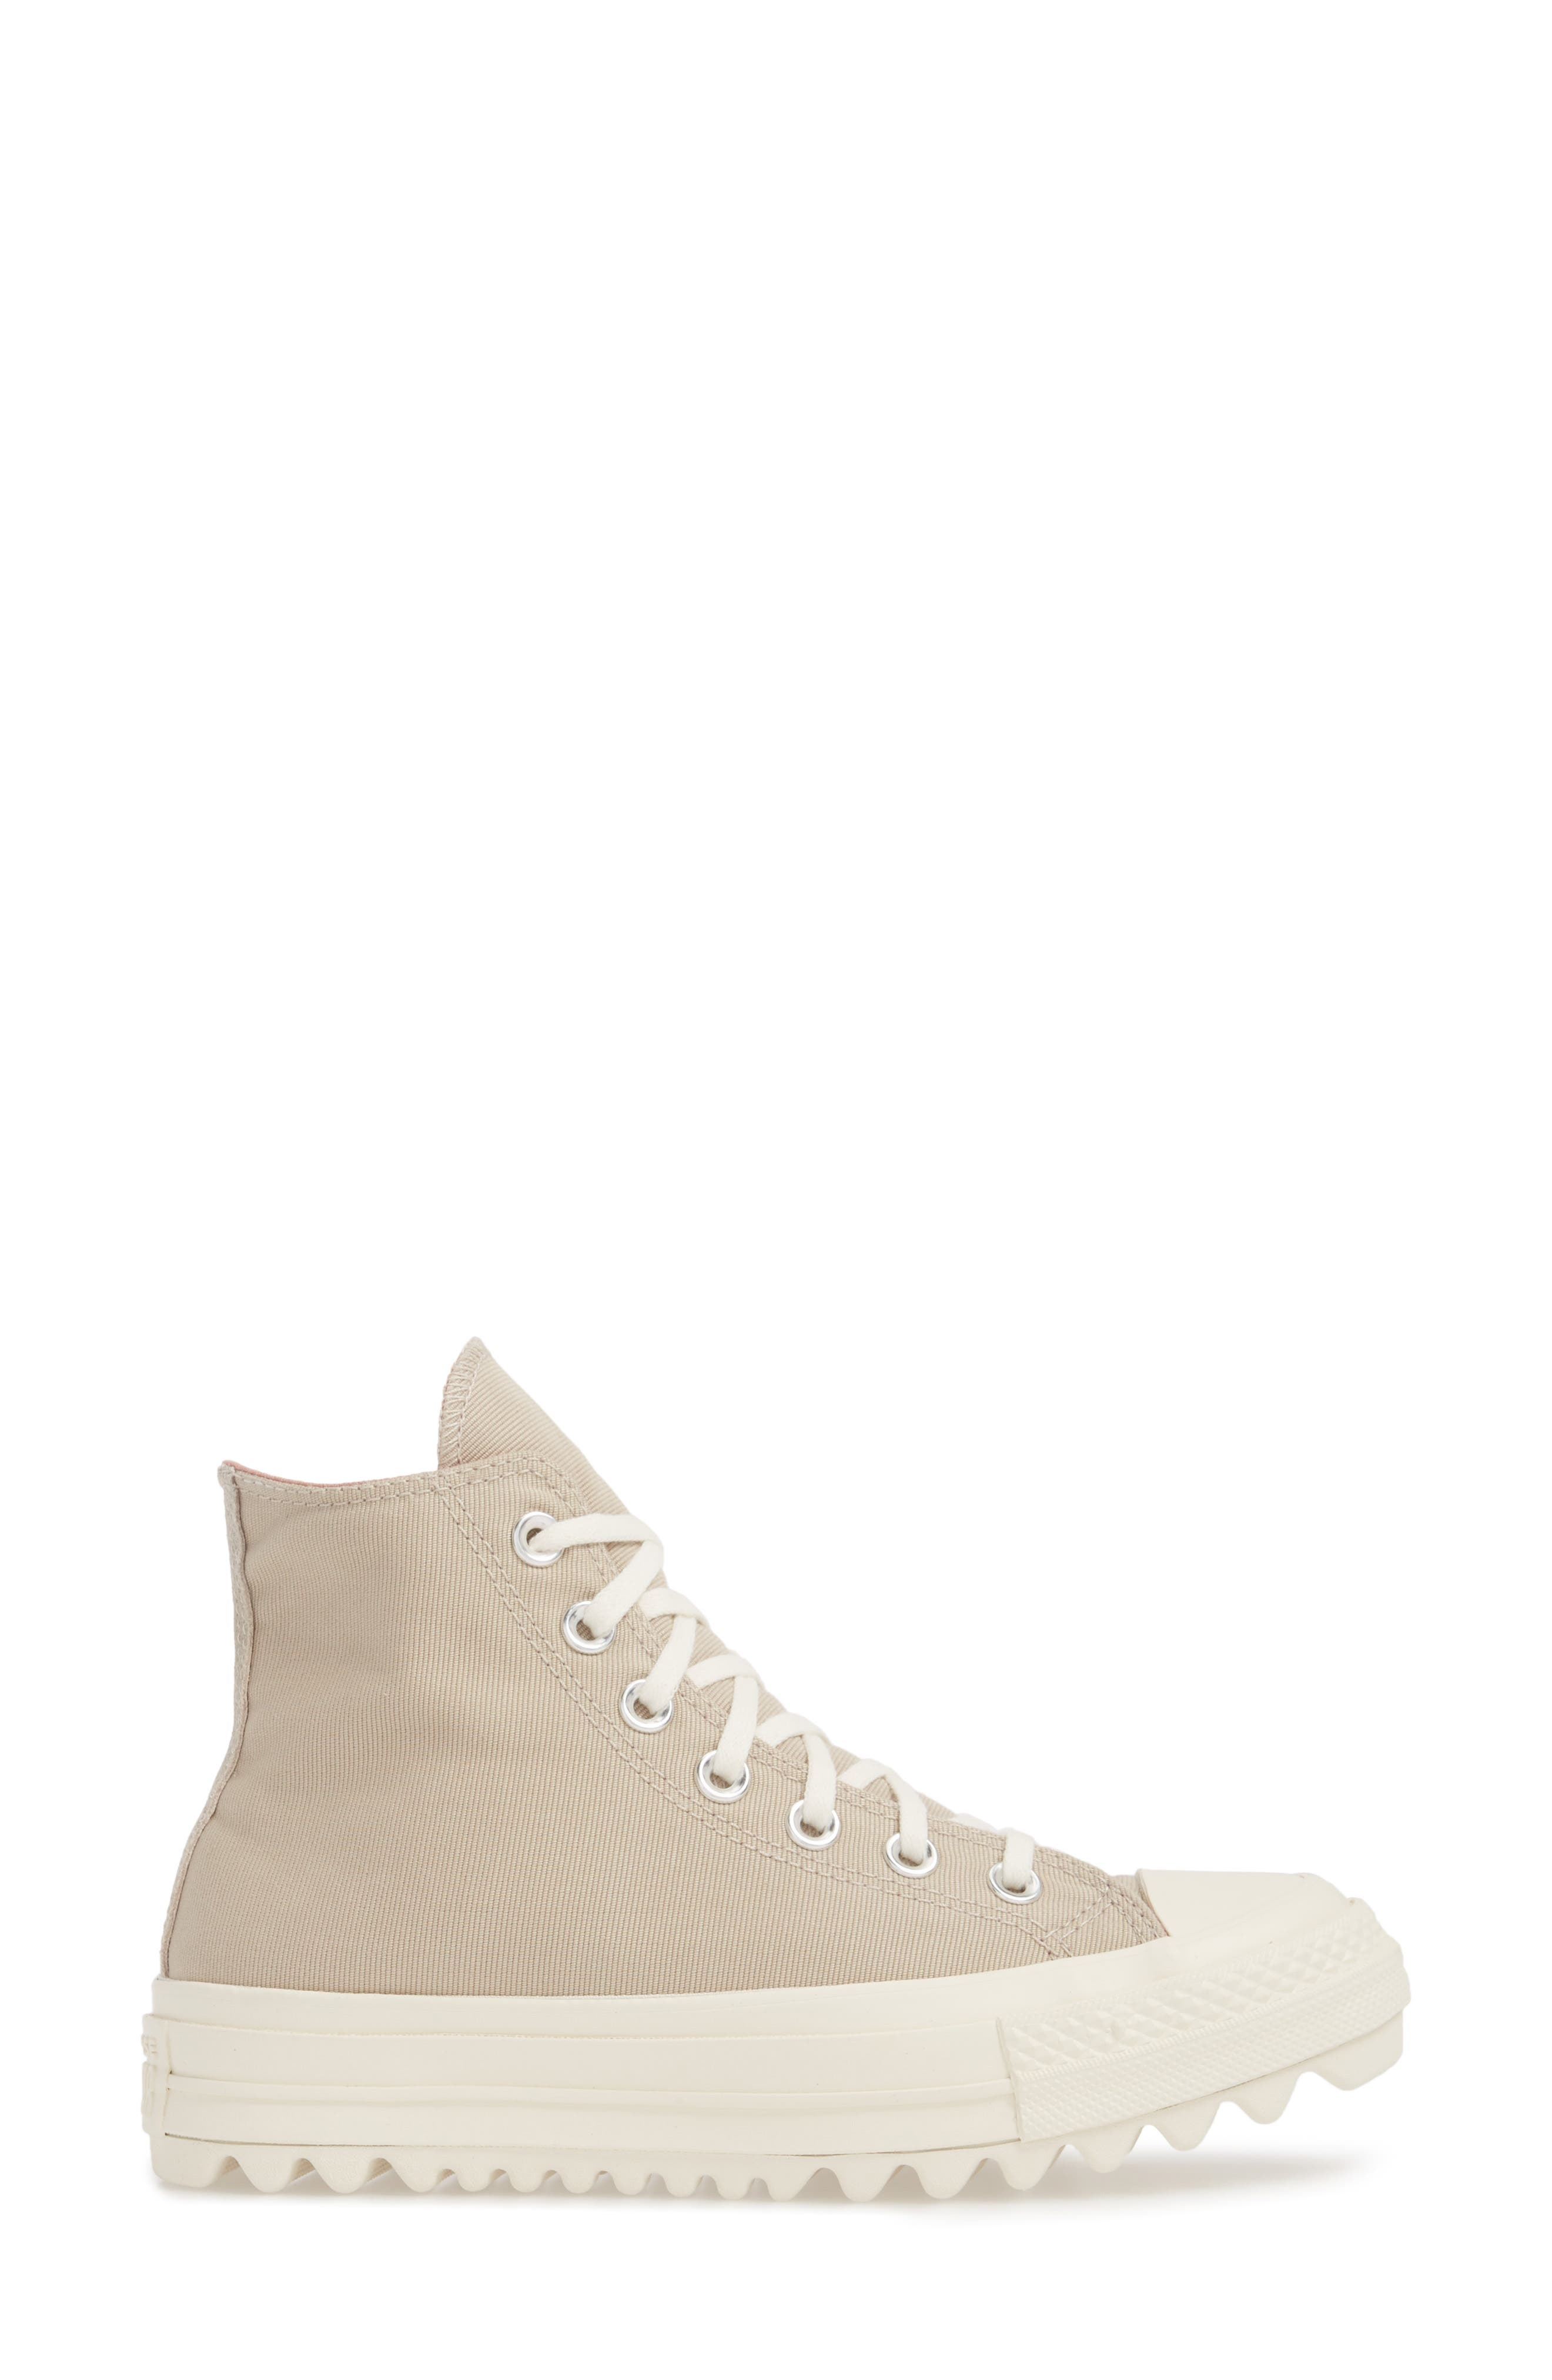 Chuck Taylor<sup>®</sup> All Star<sup>®</sup> Ripple High Top Sneaker,                             Alternate thumbnail 6, color,                             Papyrus Suede